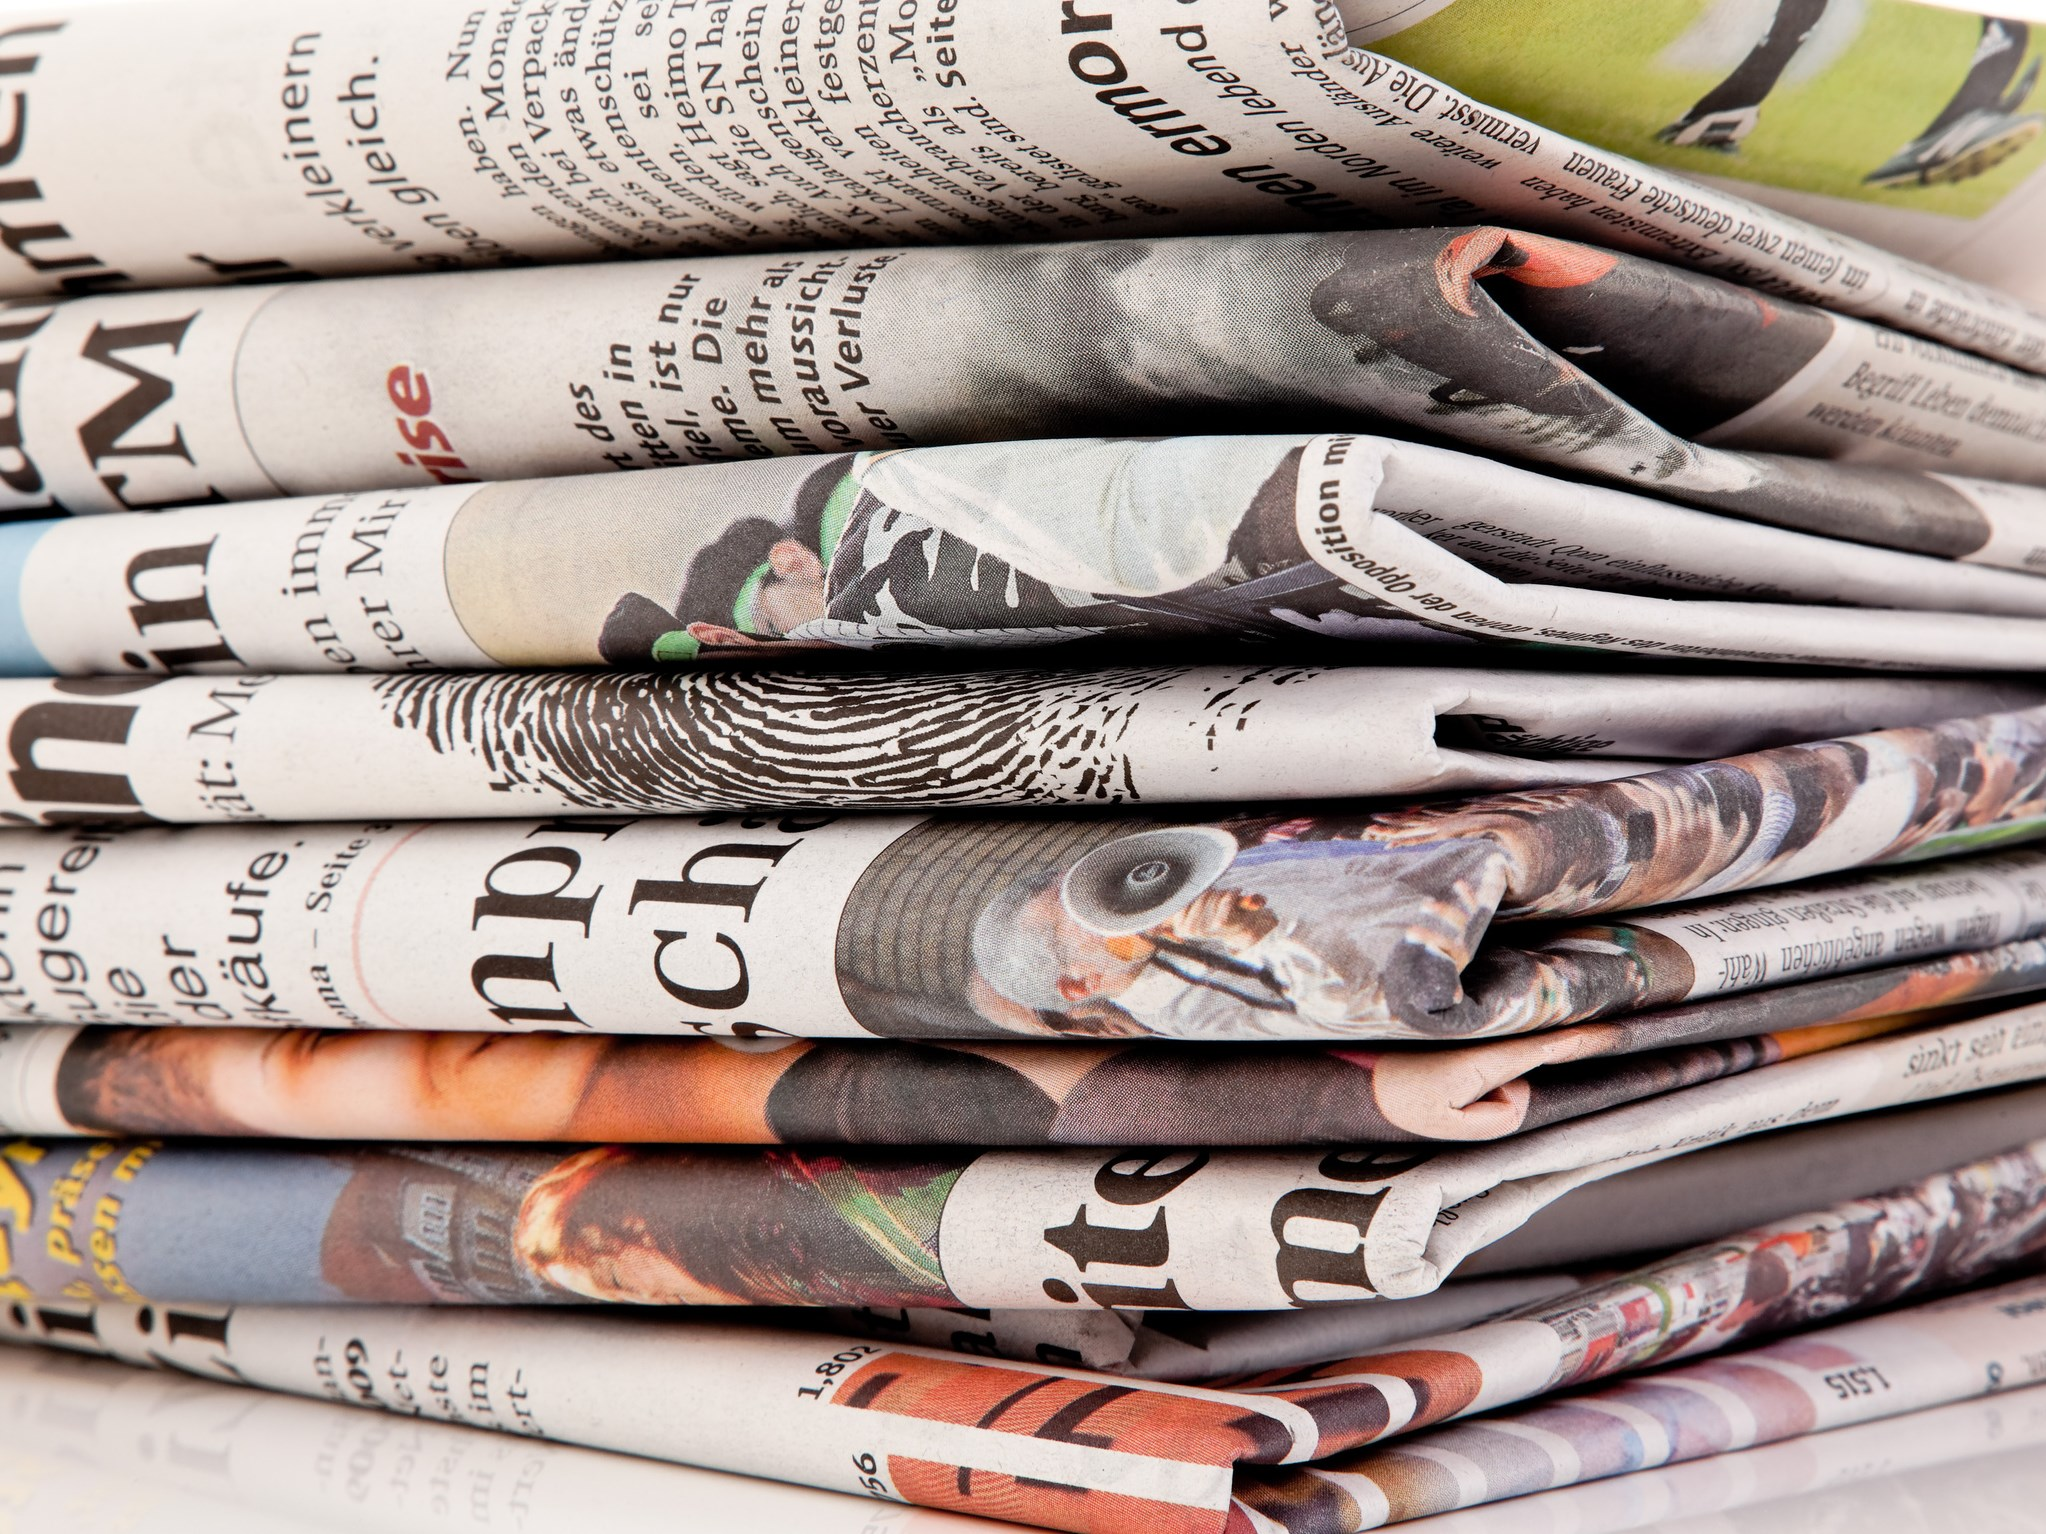 Oman's Newspaper Print Editions Are Now Open Following Temporary Closure Due to COVID-19